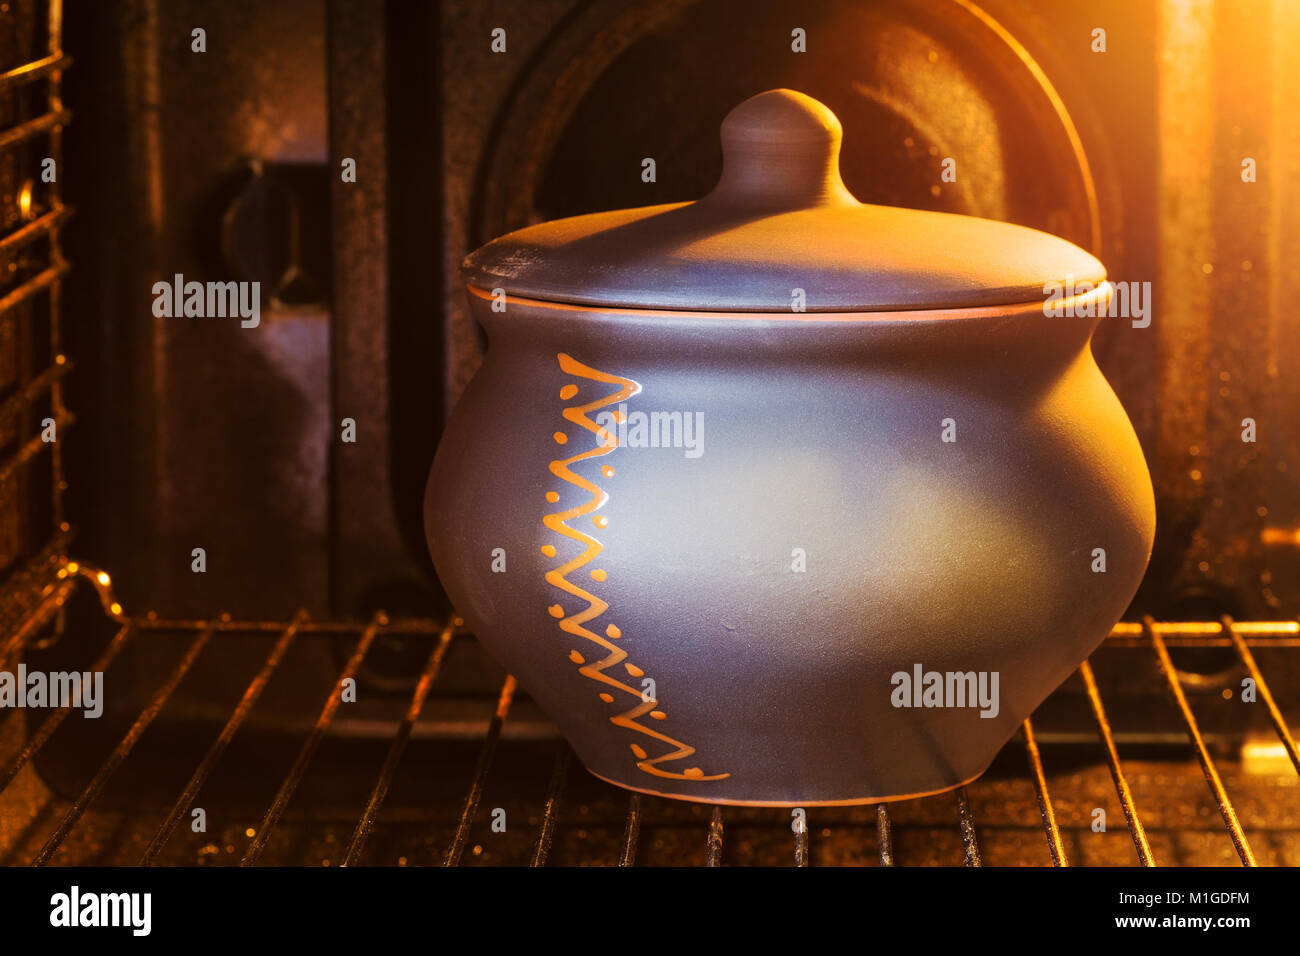 cooking soup - closed ceramic pot with stewed meat in electric oven - Stock Image